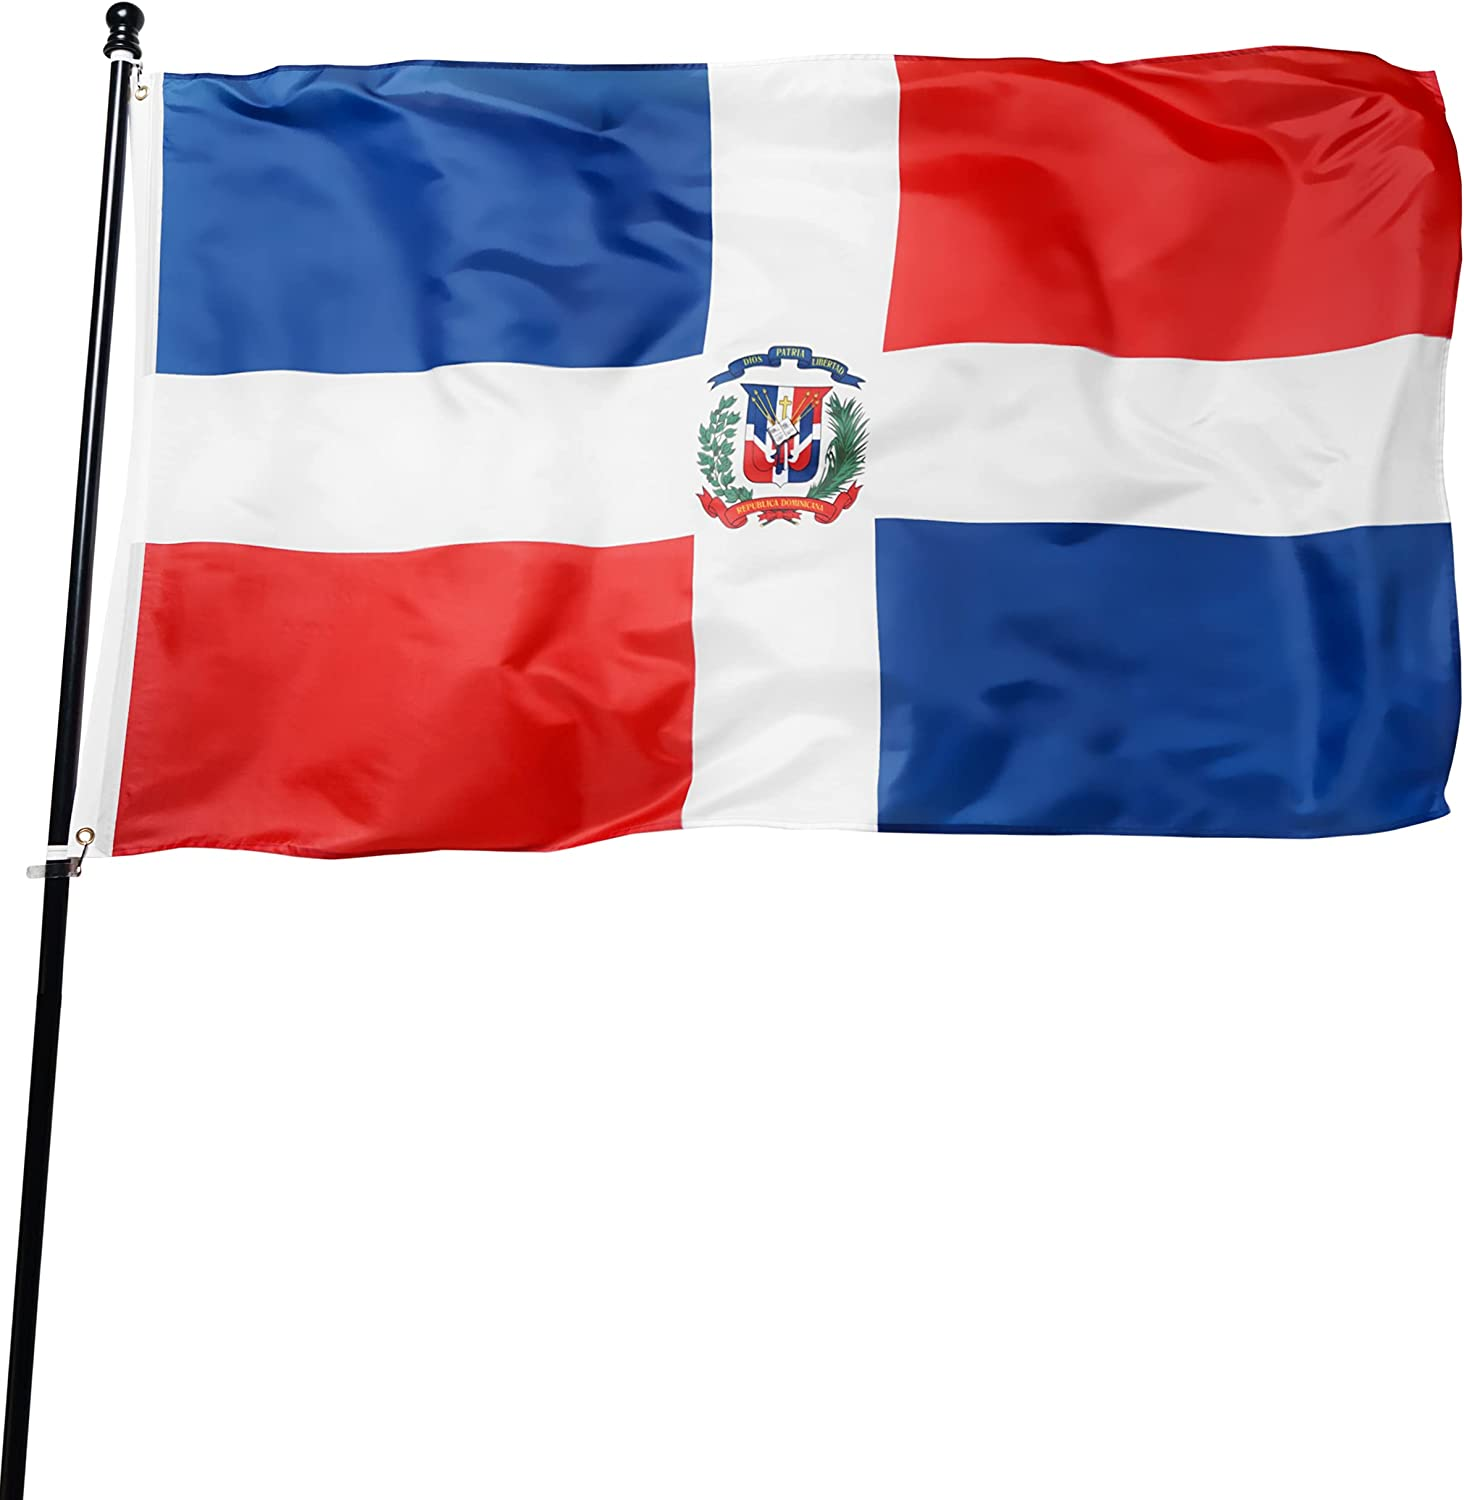 Complete Free Shipping DANF Dominican Flag 3x5 Foot Our shop most popular Republica Bandera Domi De Polyester